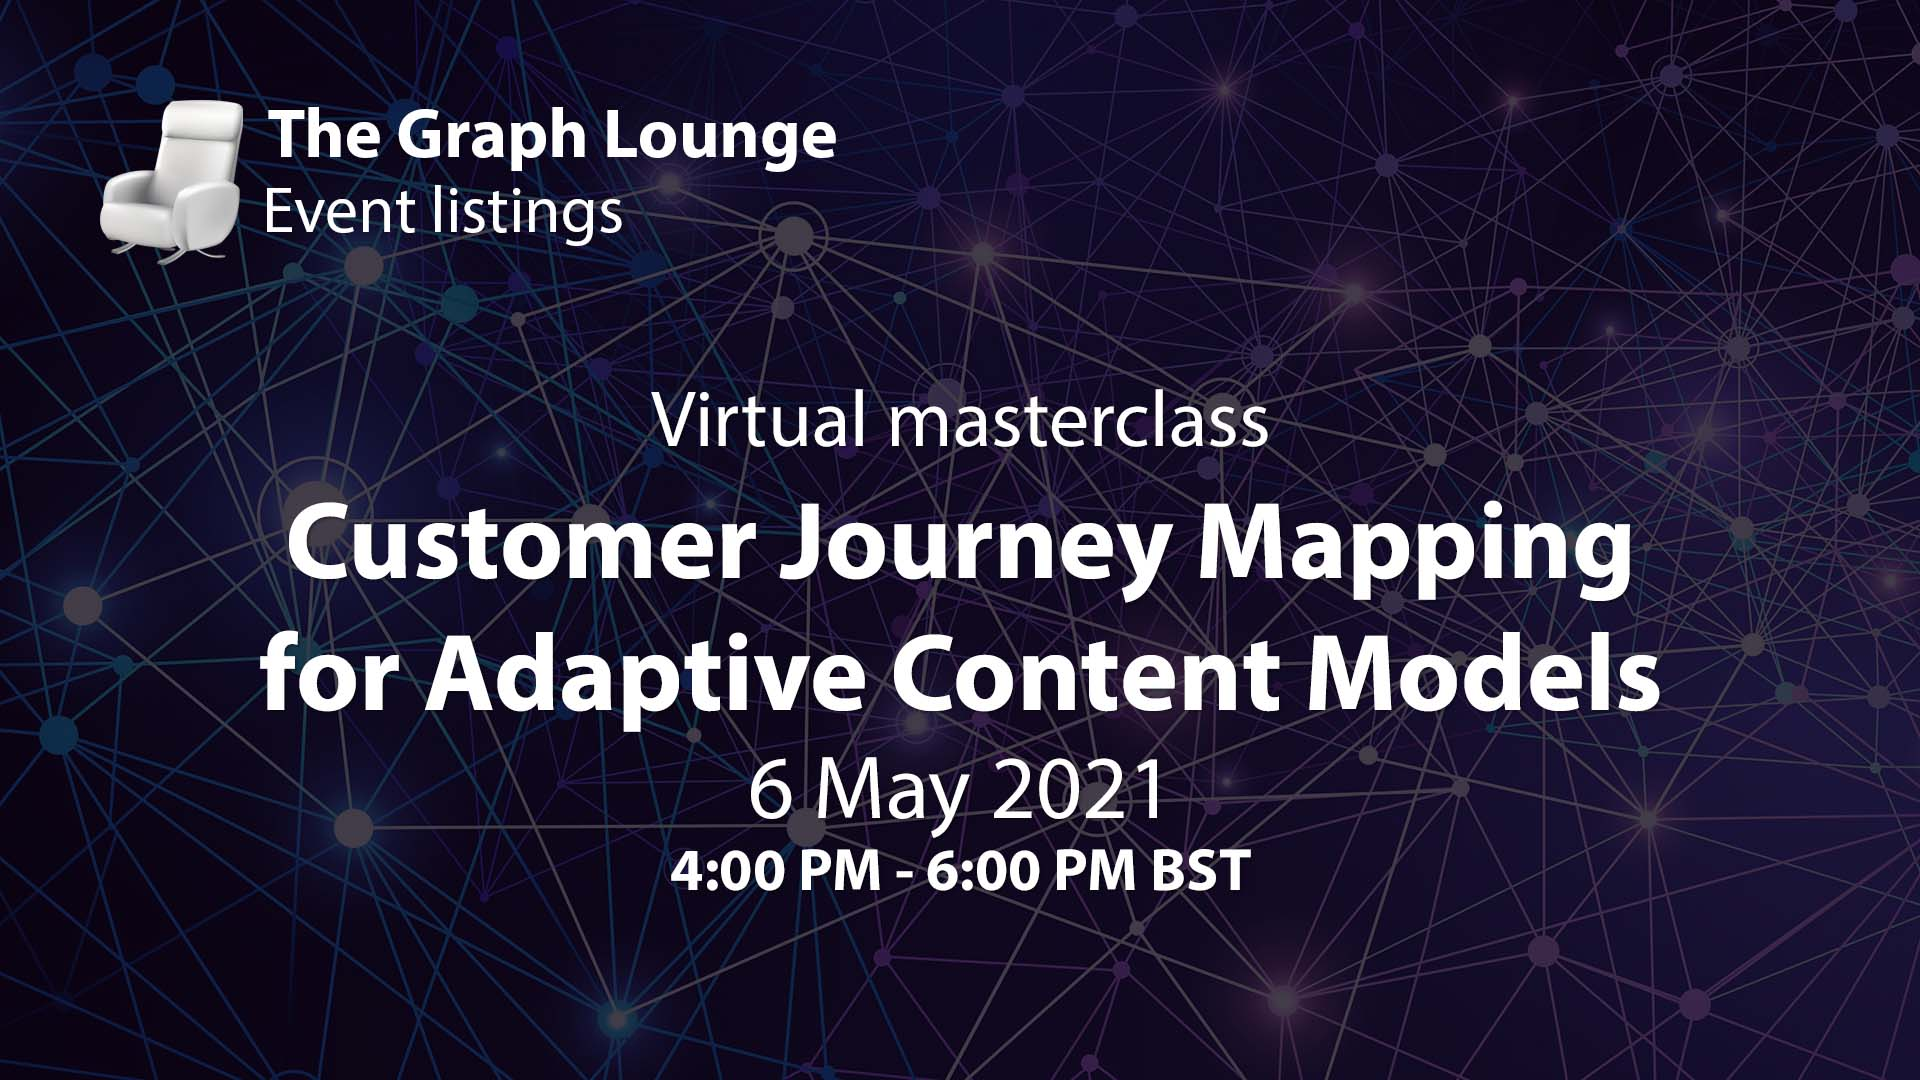 Customer Journey Mapping for Adaptive Content Models